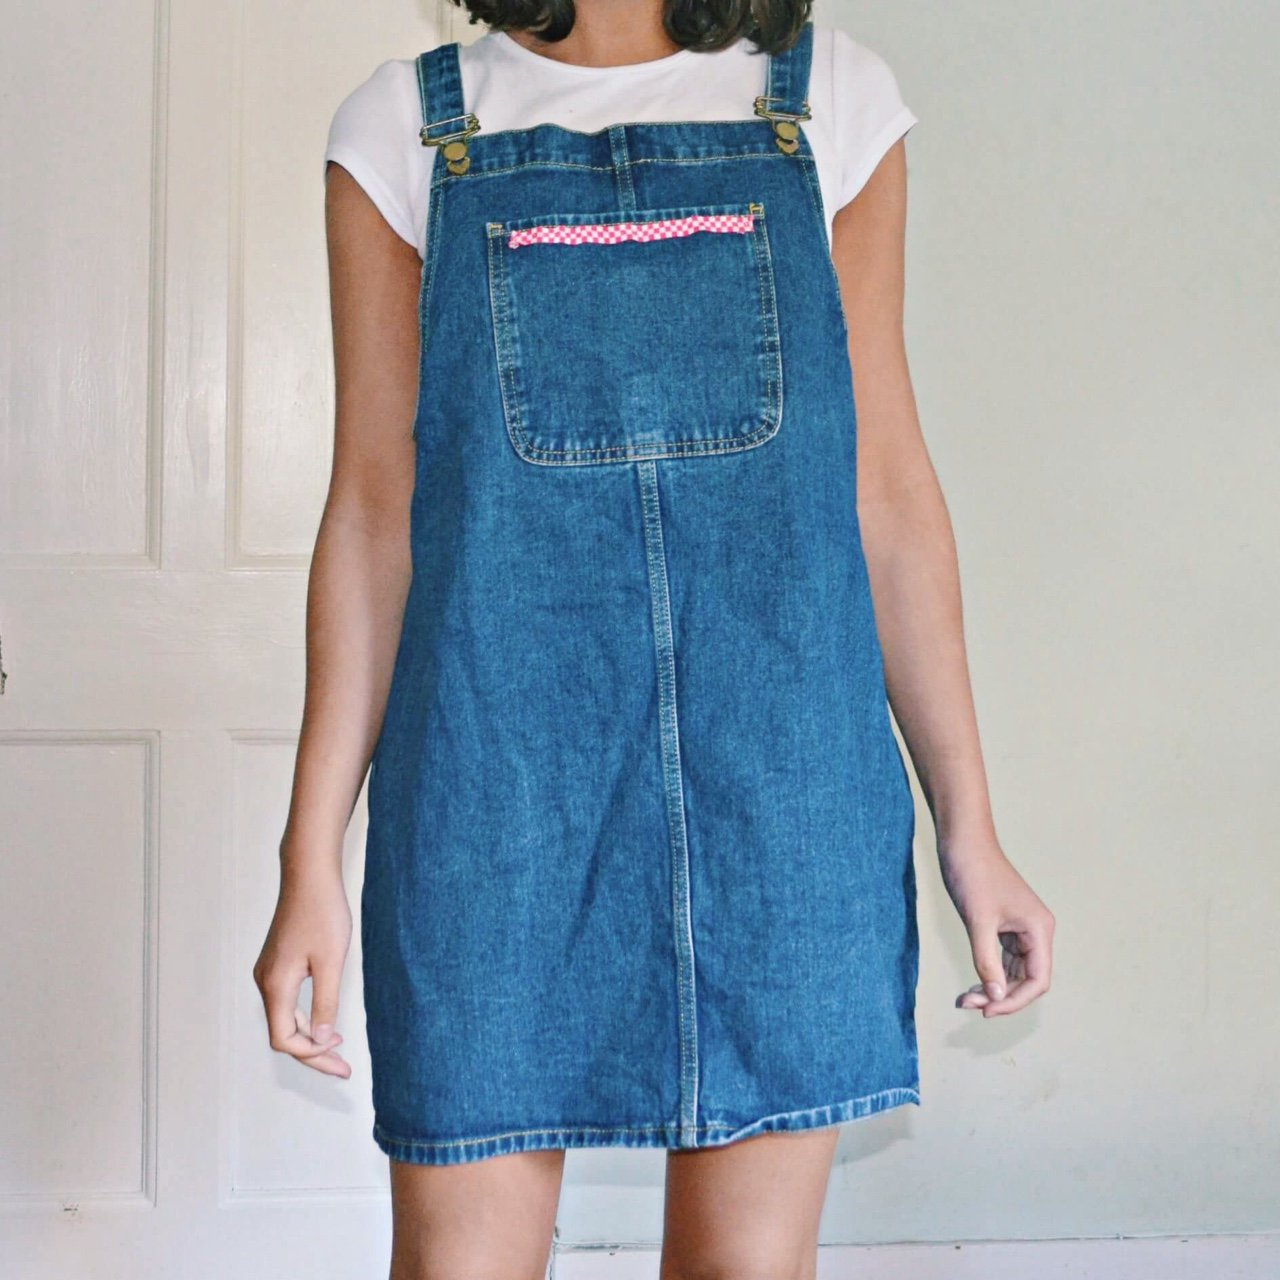 756c432ed02  elle5. last year. United Kingdom. 🍓🍓 Adorable vintage 90s dark blue denim  dungaree dress ...